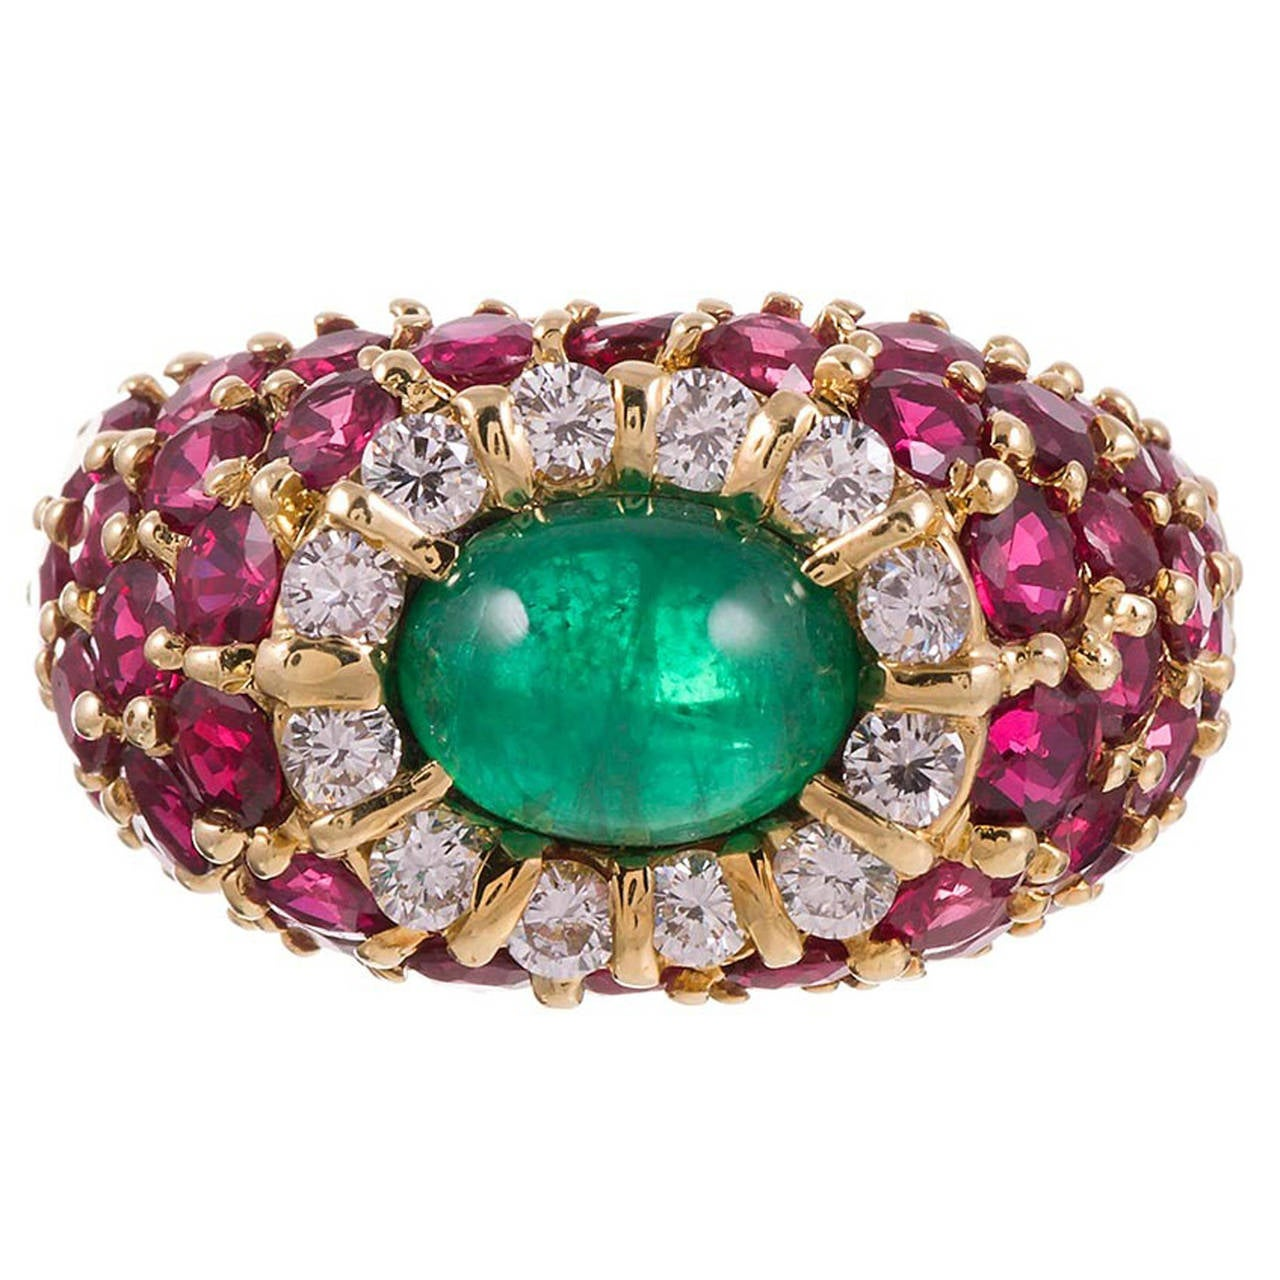 Hammerman Bros. 1.20 Carat Cabochon Emerald Ruby Diamond Gold Ring For Sale